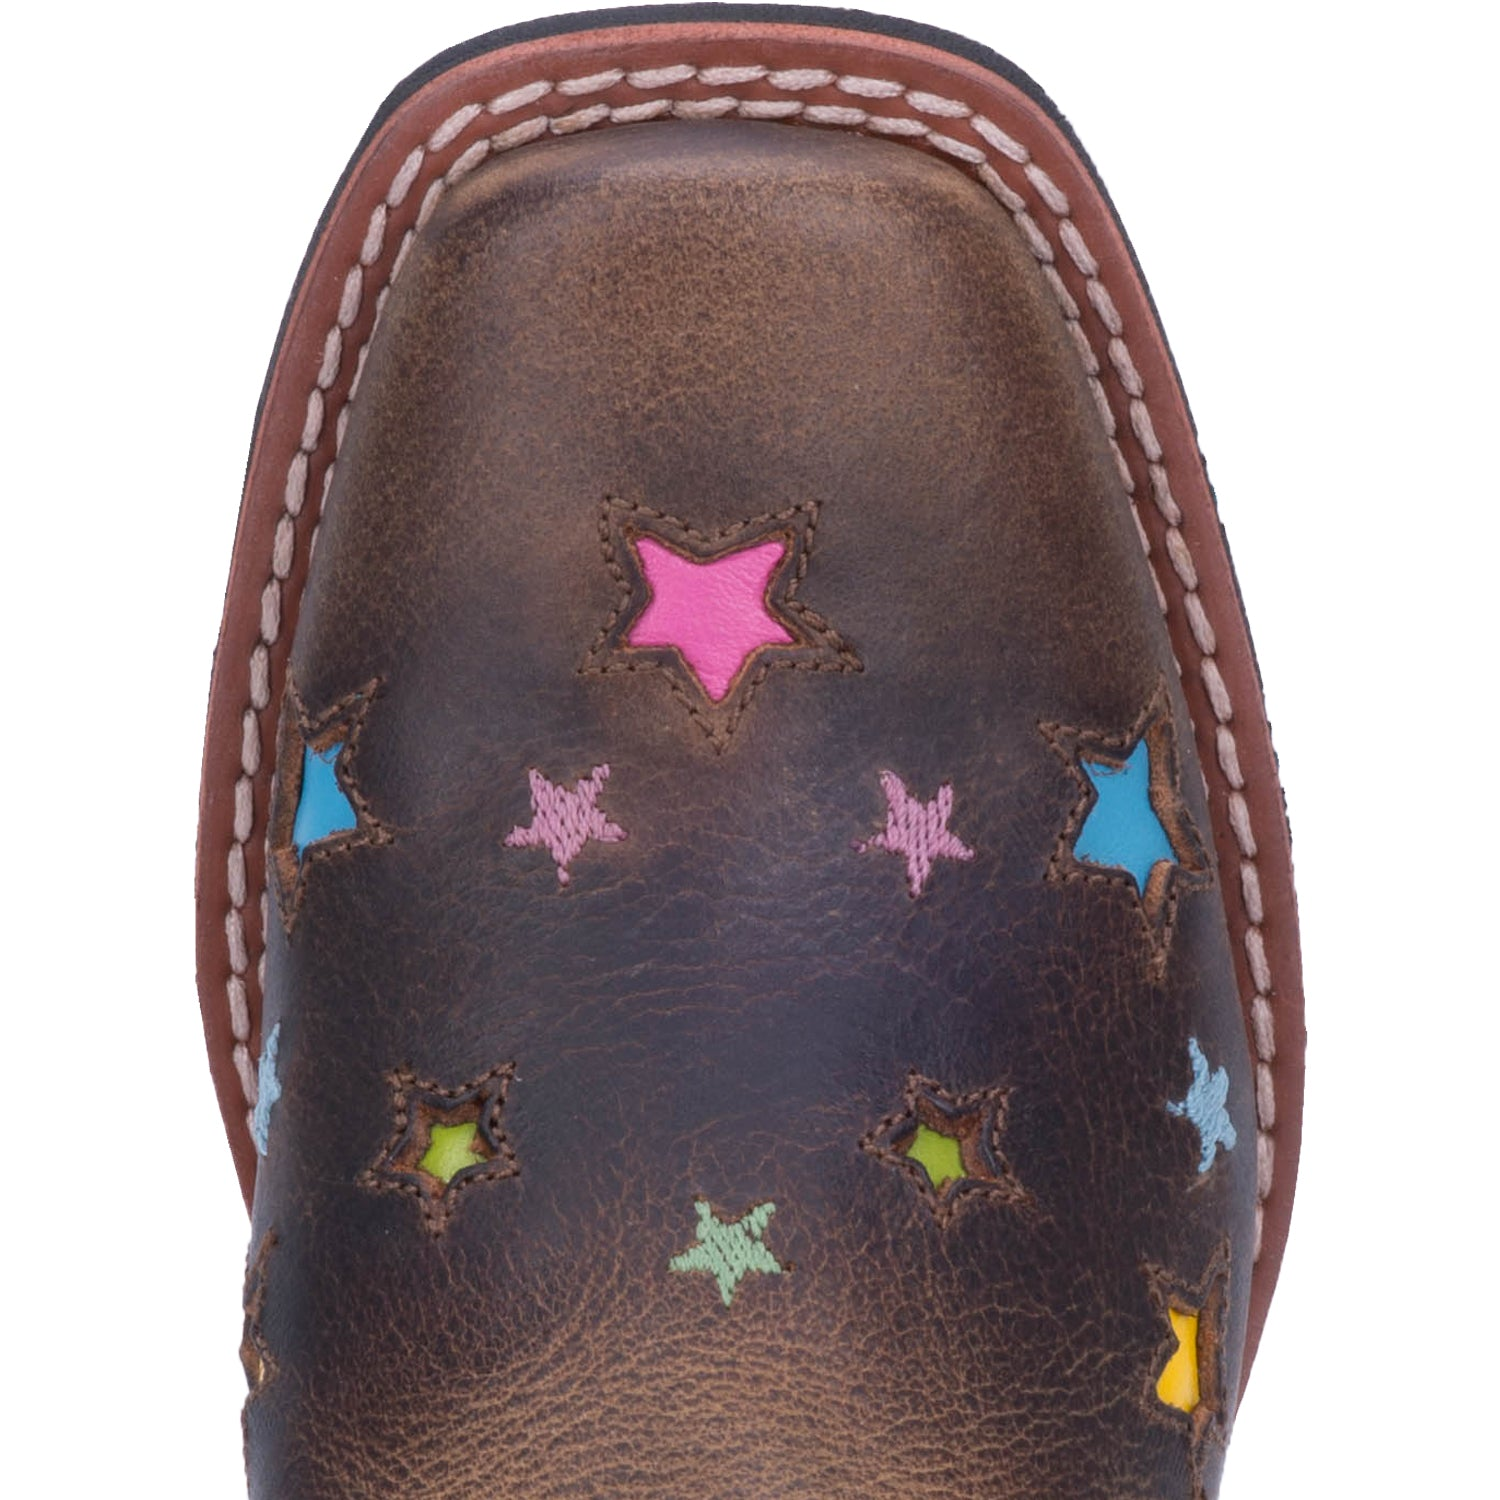 STARLETT LEATHER CHILDREN'S BOOT 4197205147690